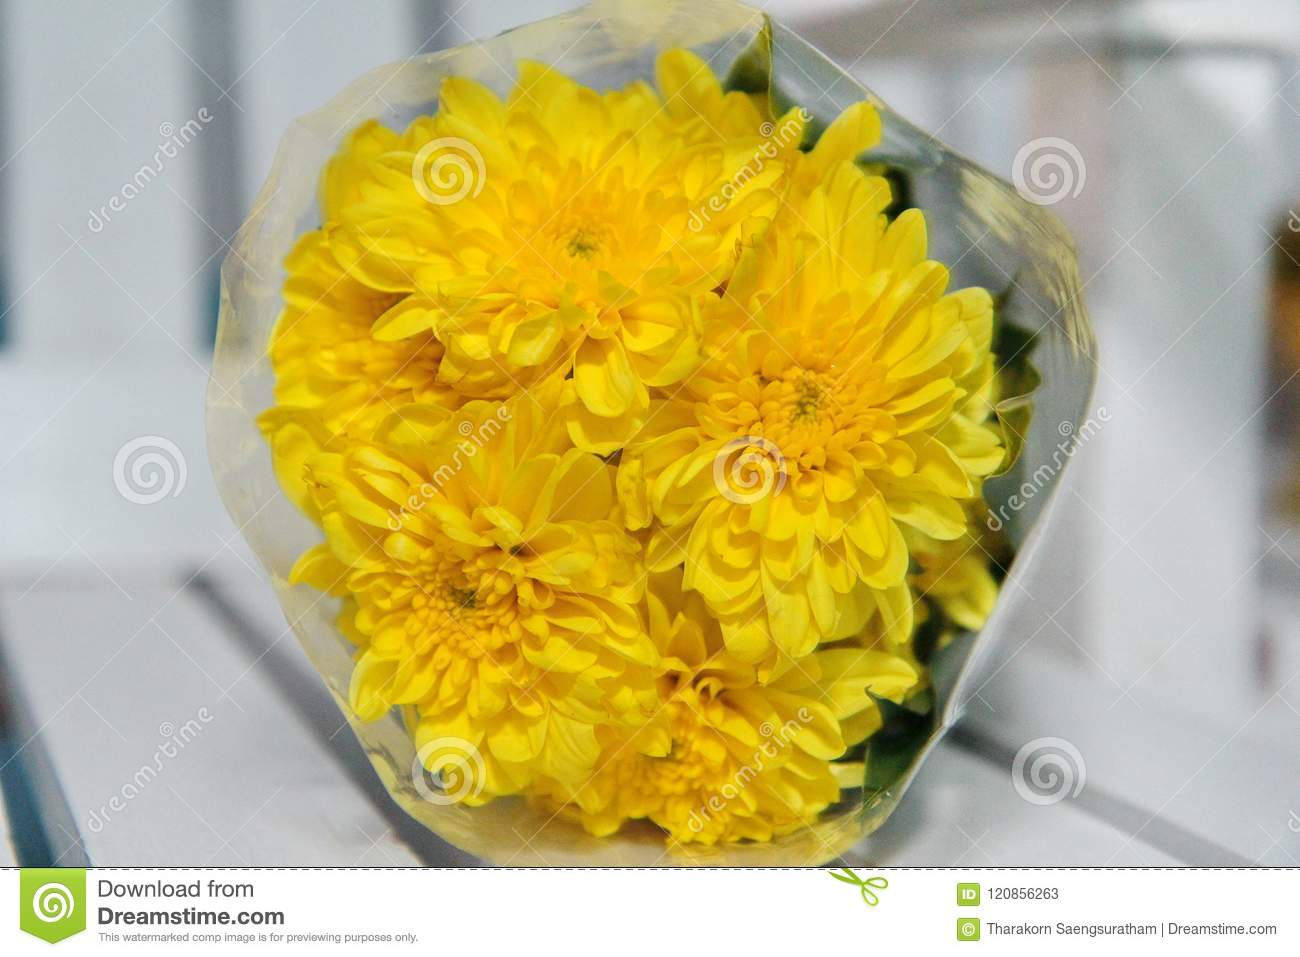 Colorful yellow flowers bouquet is a combination rests on white colorful yellow flowers bouquet is a combination rests on white mightylinksfo